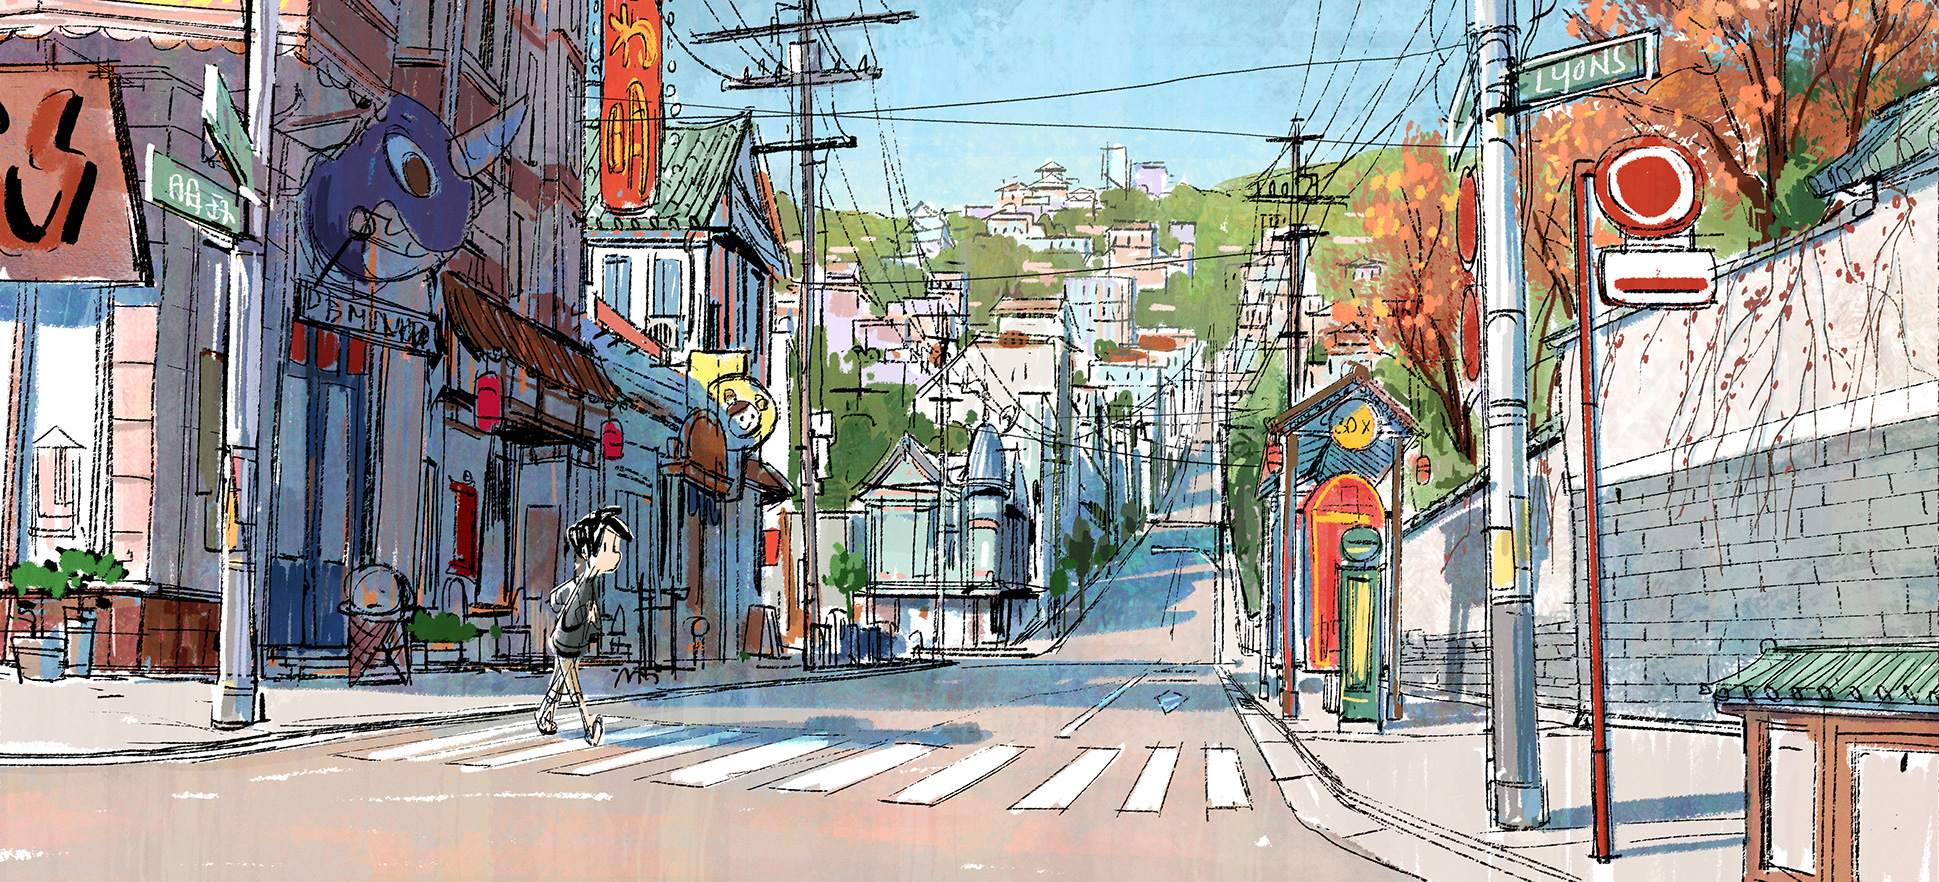 Big Hero 6 Concept Art by Mingjue Helen Chen